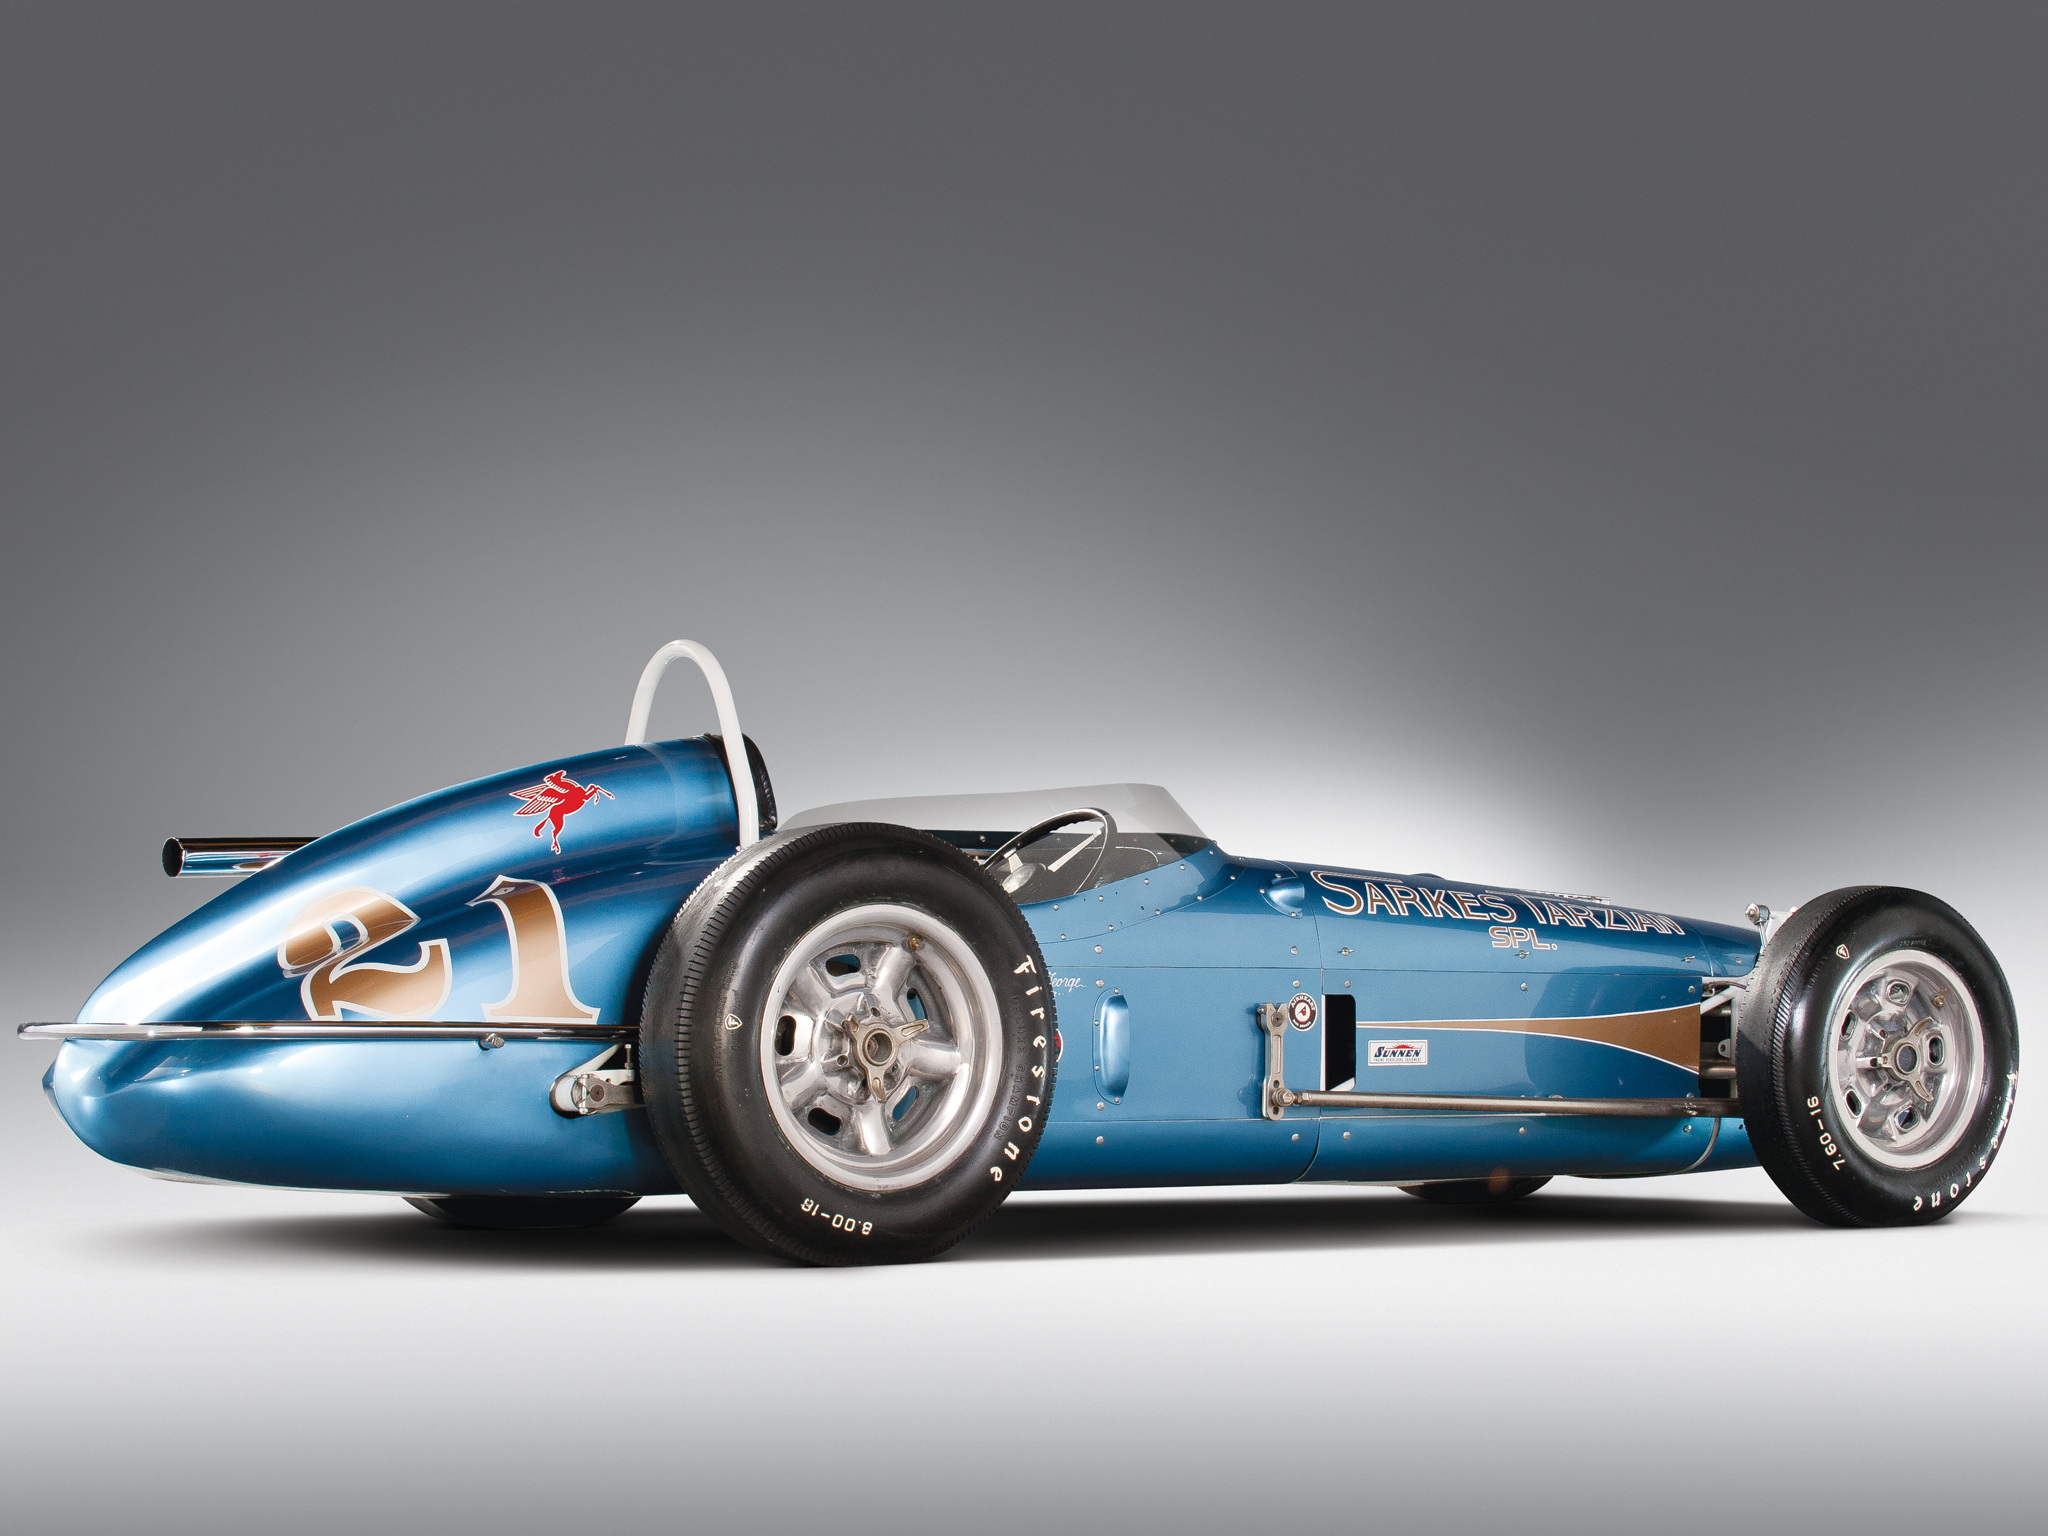 Iphone X Blueprint Wallpaper Lesovsky Indianapolis Roadster 1962 Full Hd Wallpaper And